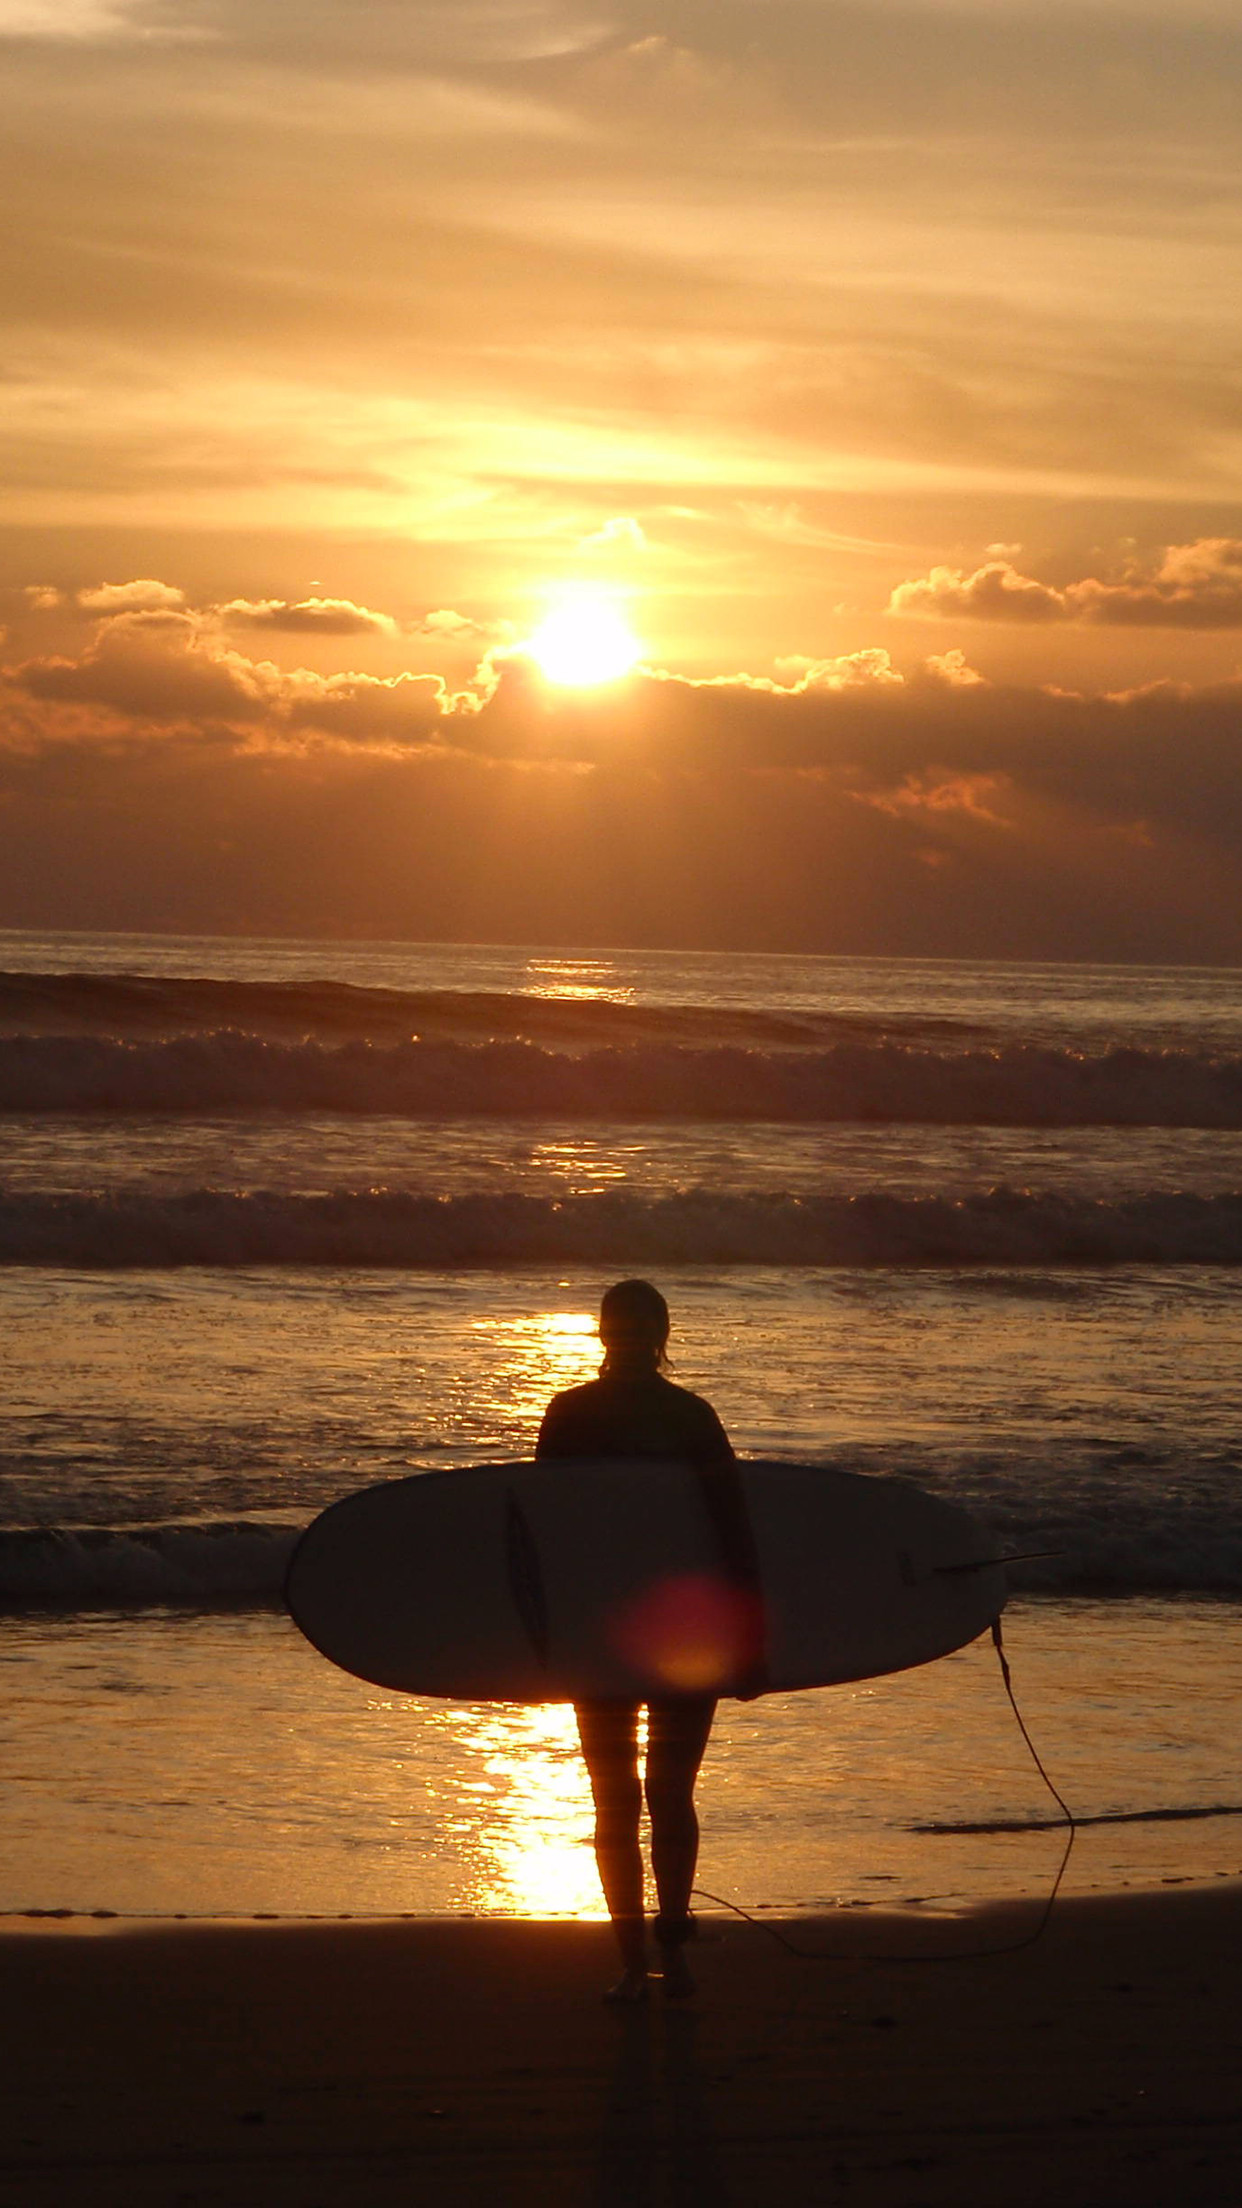 Surfing Sunset iPhone Parallax 3Wallpapers Les 3 Wallpapers iPhone du .